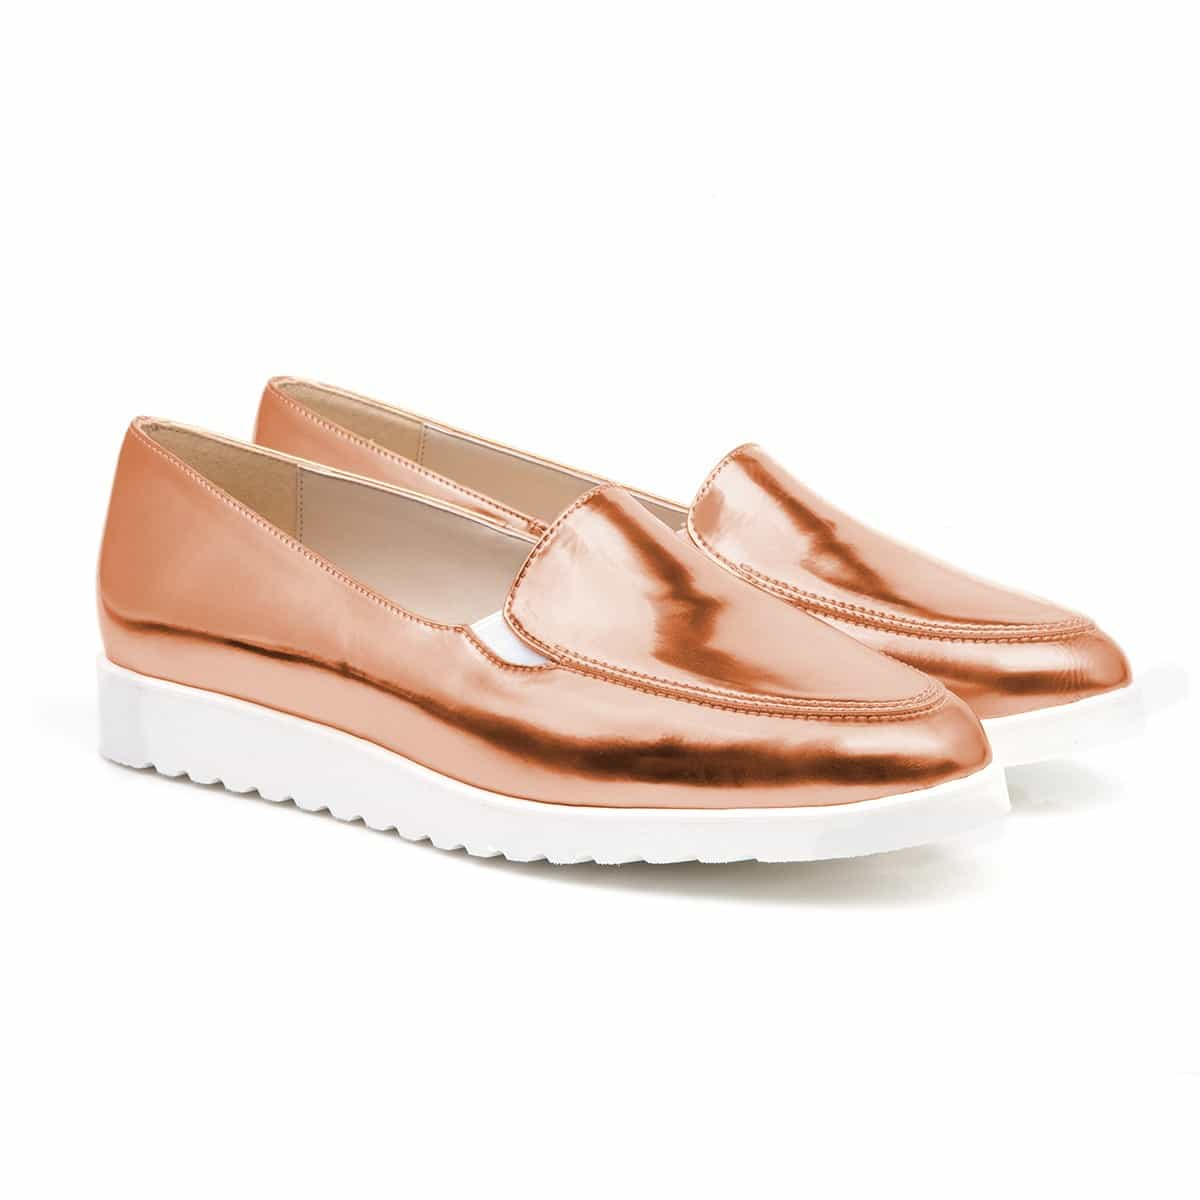 ROSE GOLD CHARLIE PUMPS à 89€ de chez Beyond Skin : http://www.beyondskin.co.uk/womens/charlie-rose-gold-pumps.html